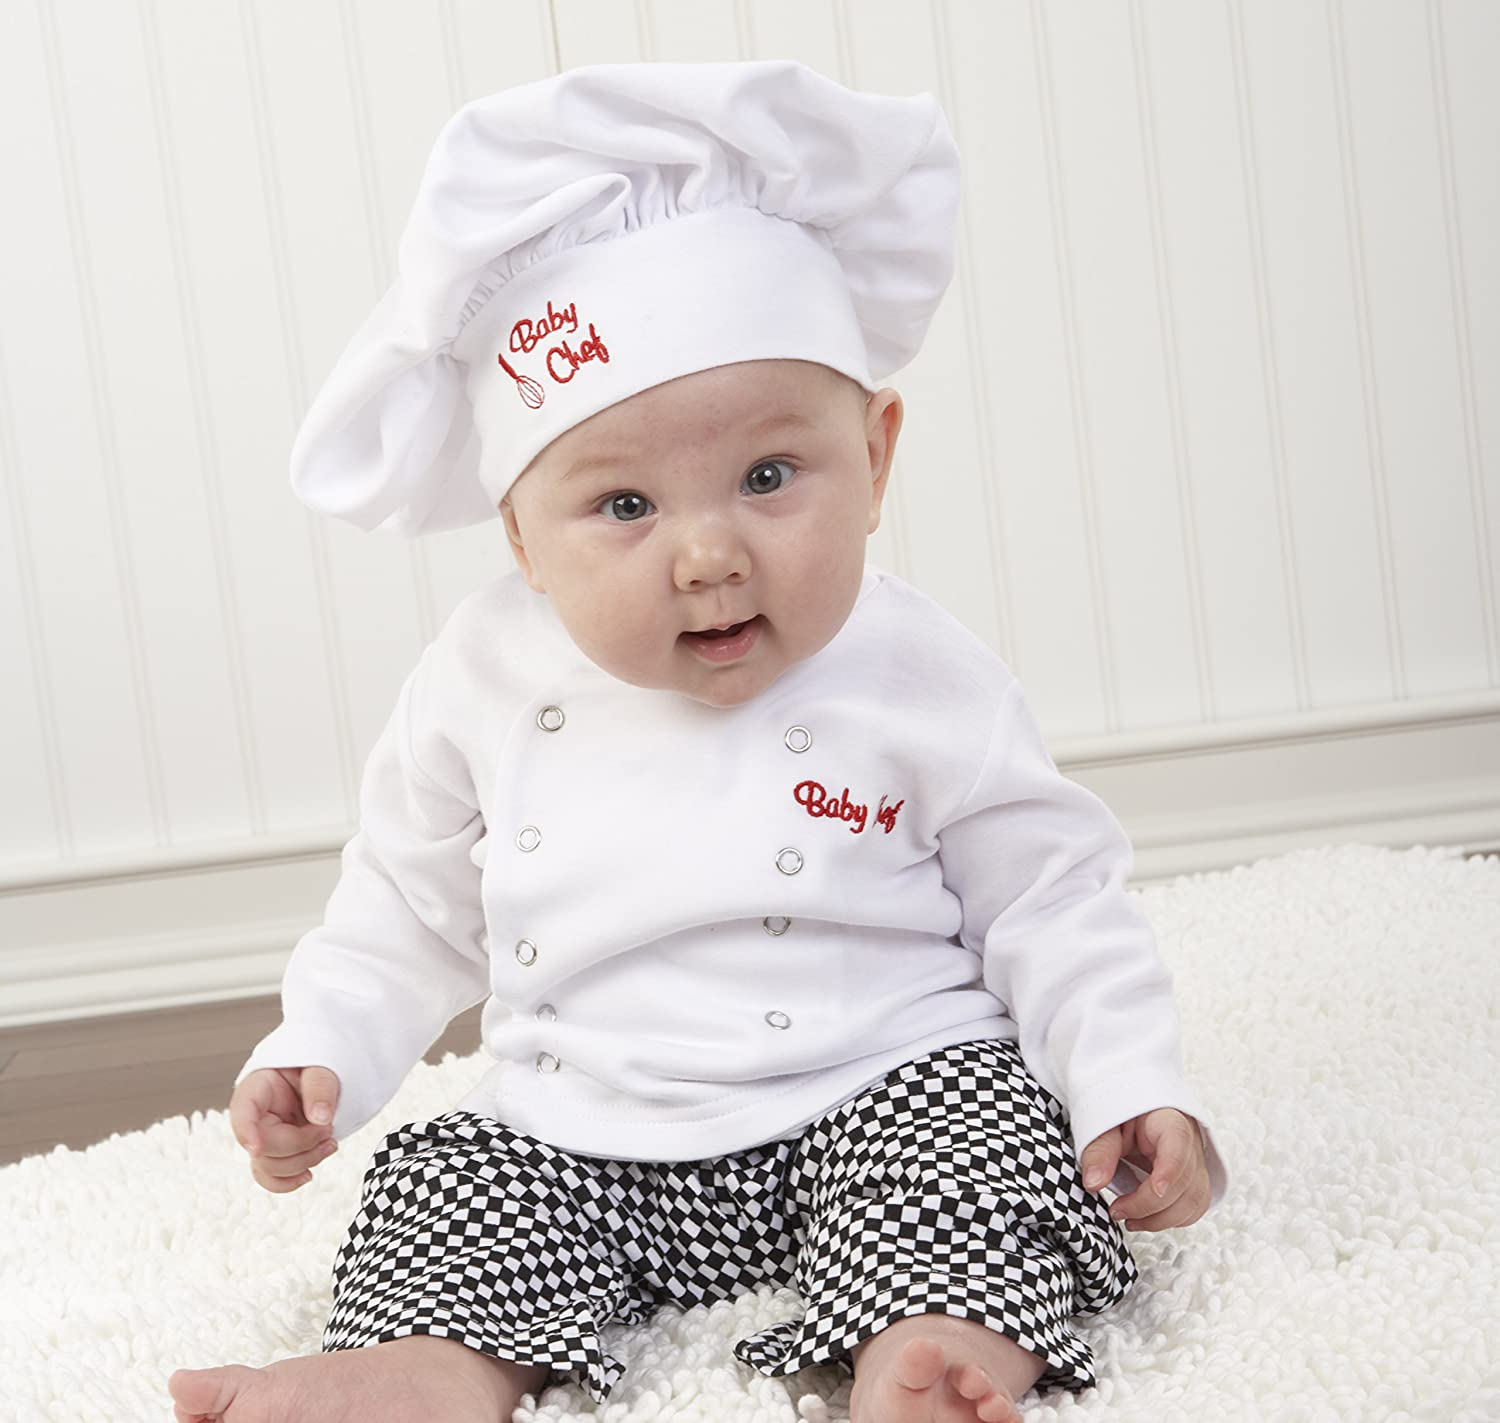 Baby Aspen Big Dreamzzz Baby Chef Three Piece Layette in Culinary